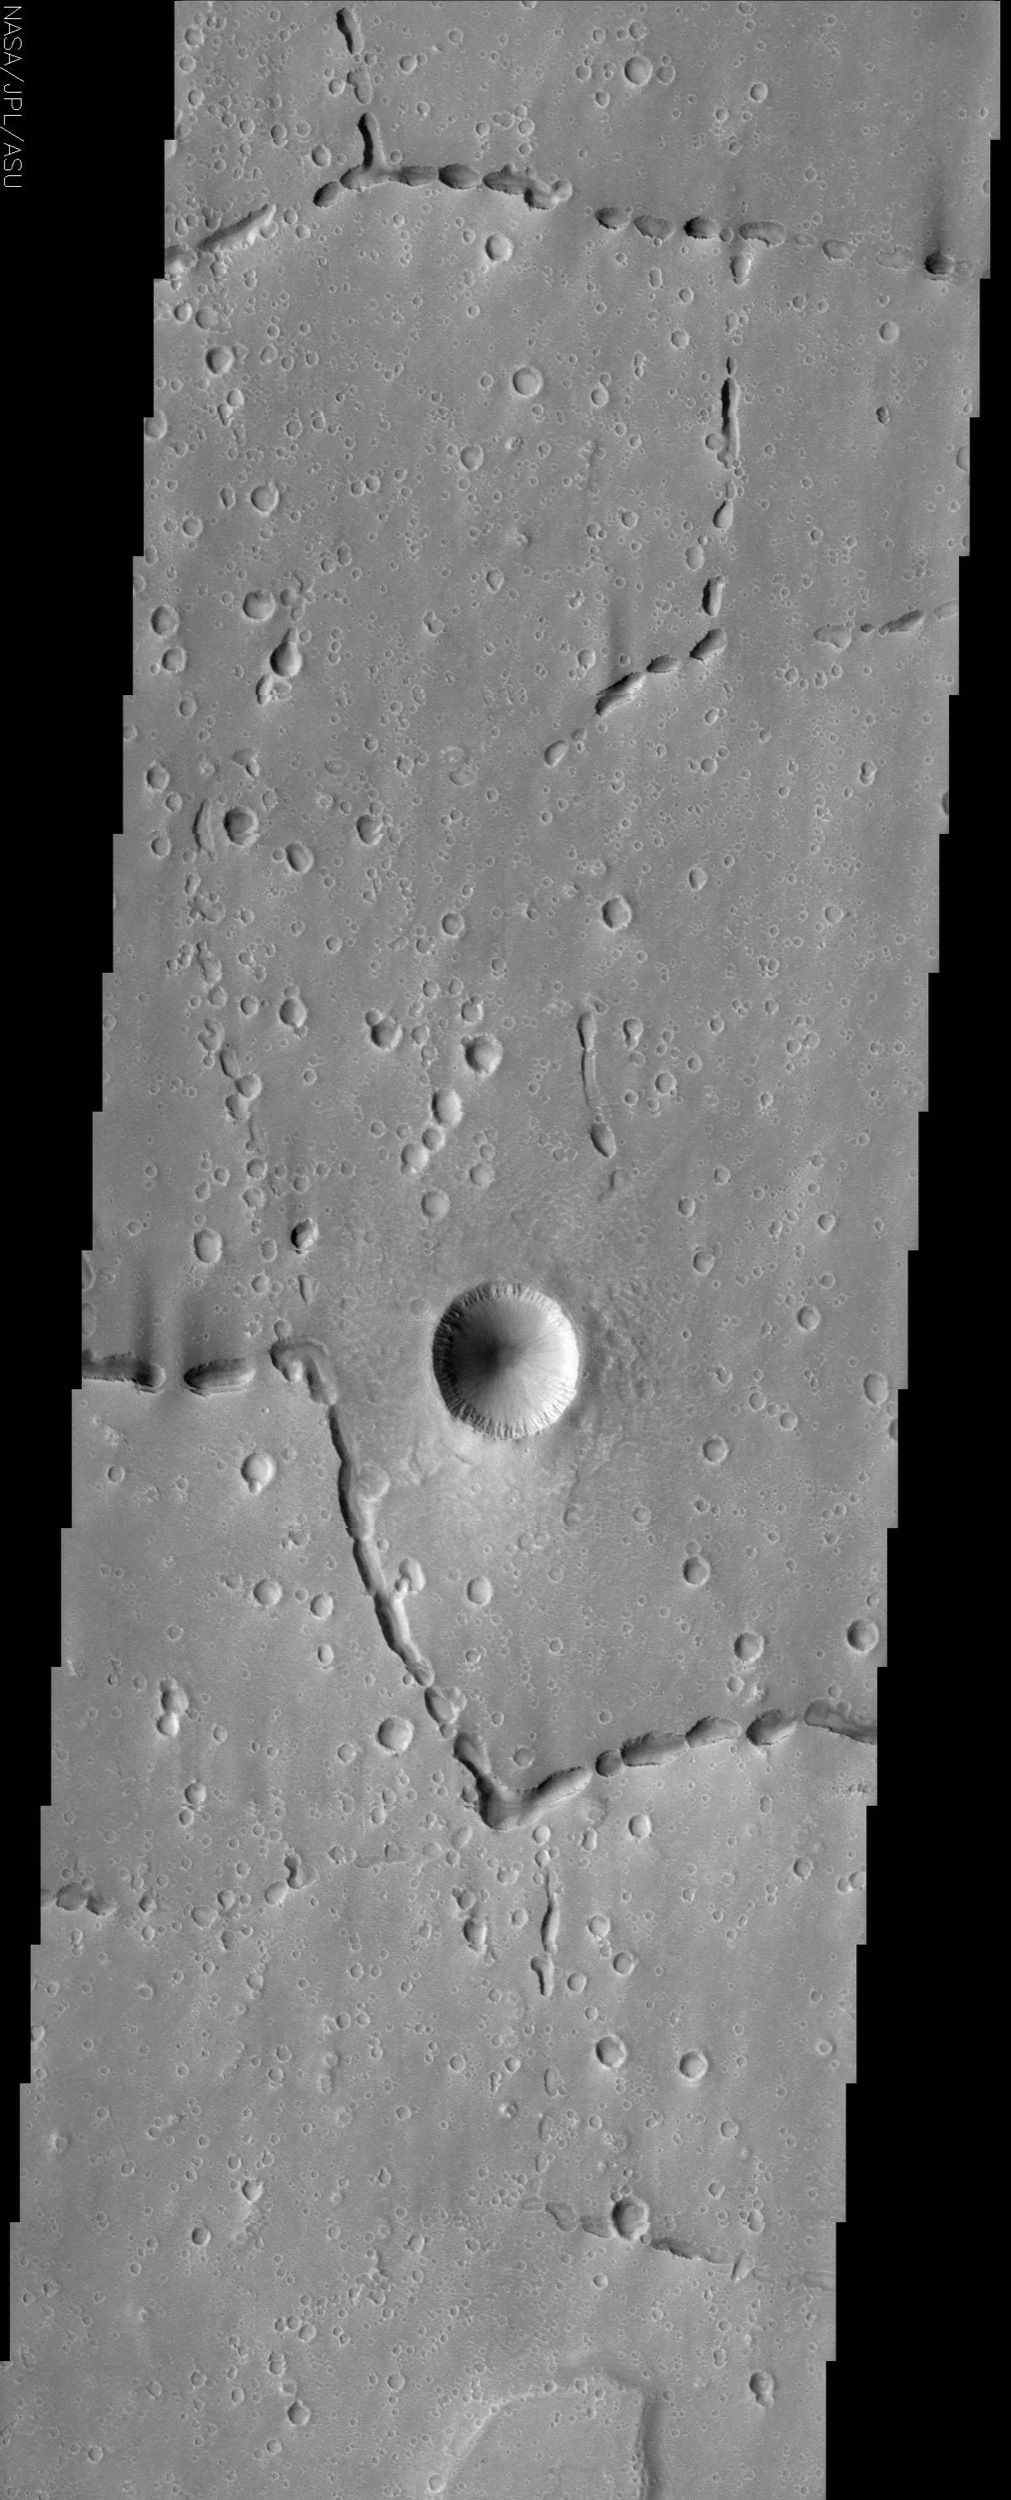 Off the western flank of Elysium are the Hephaestus Fossae, seen in this image from NASA's Mars Odyssey, with linear arrangements of small, round pits. These features are commonly called 'pit chains' and most likely represent the collapse of lava tubes.